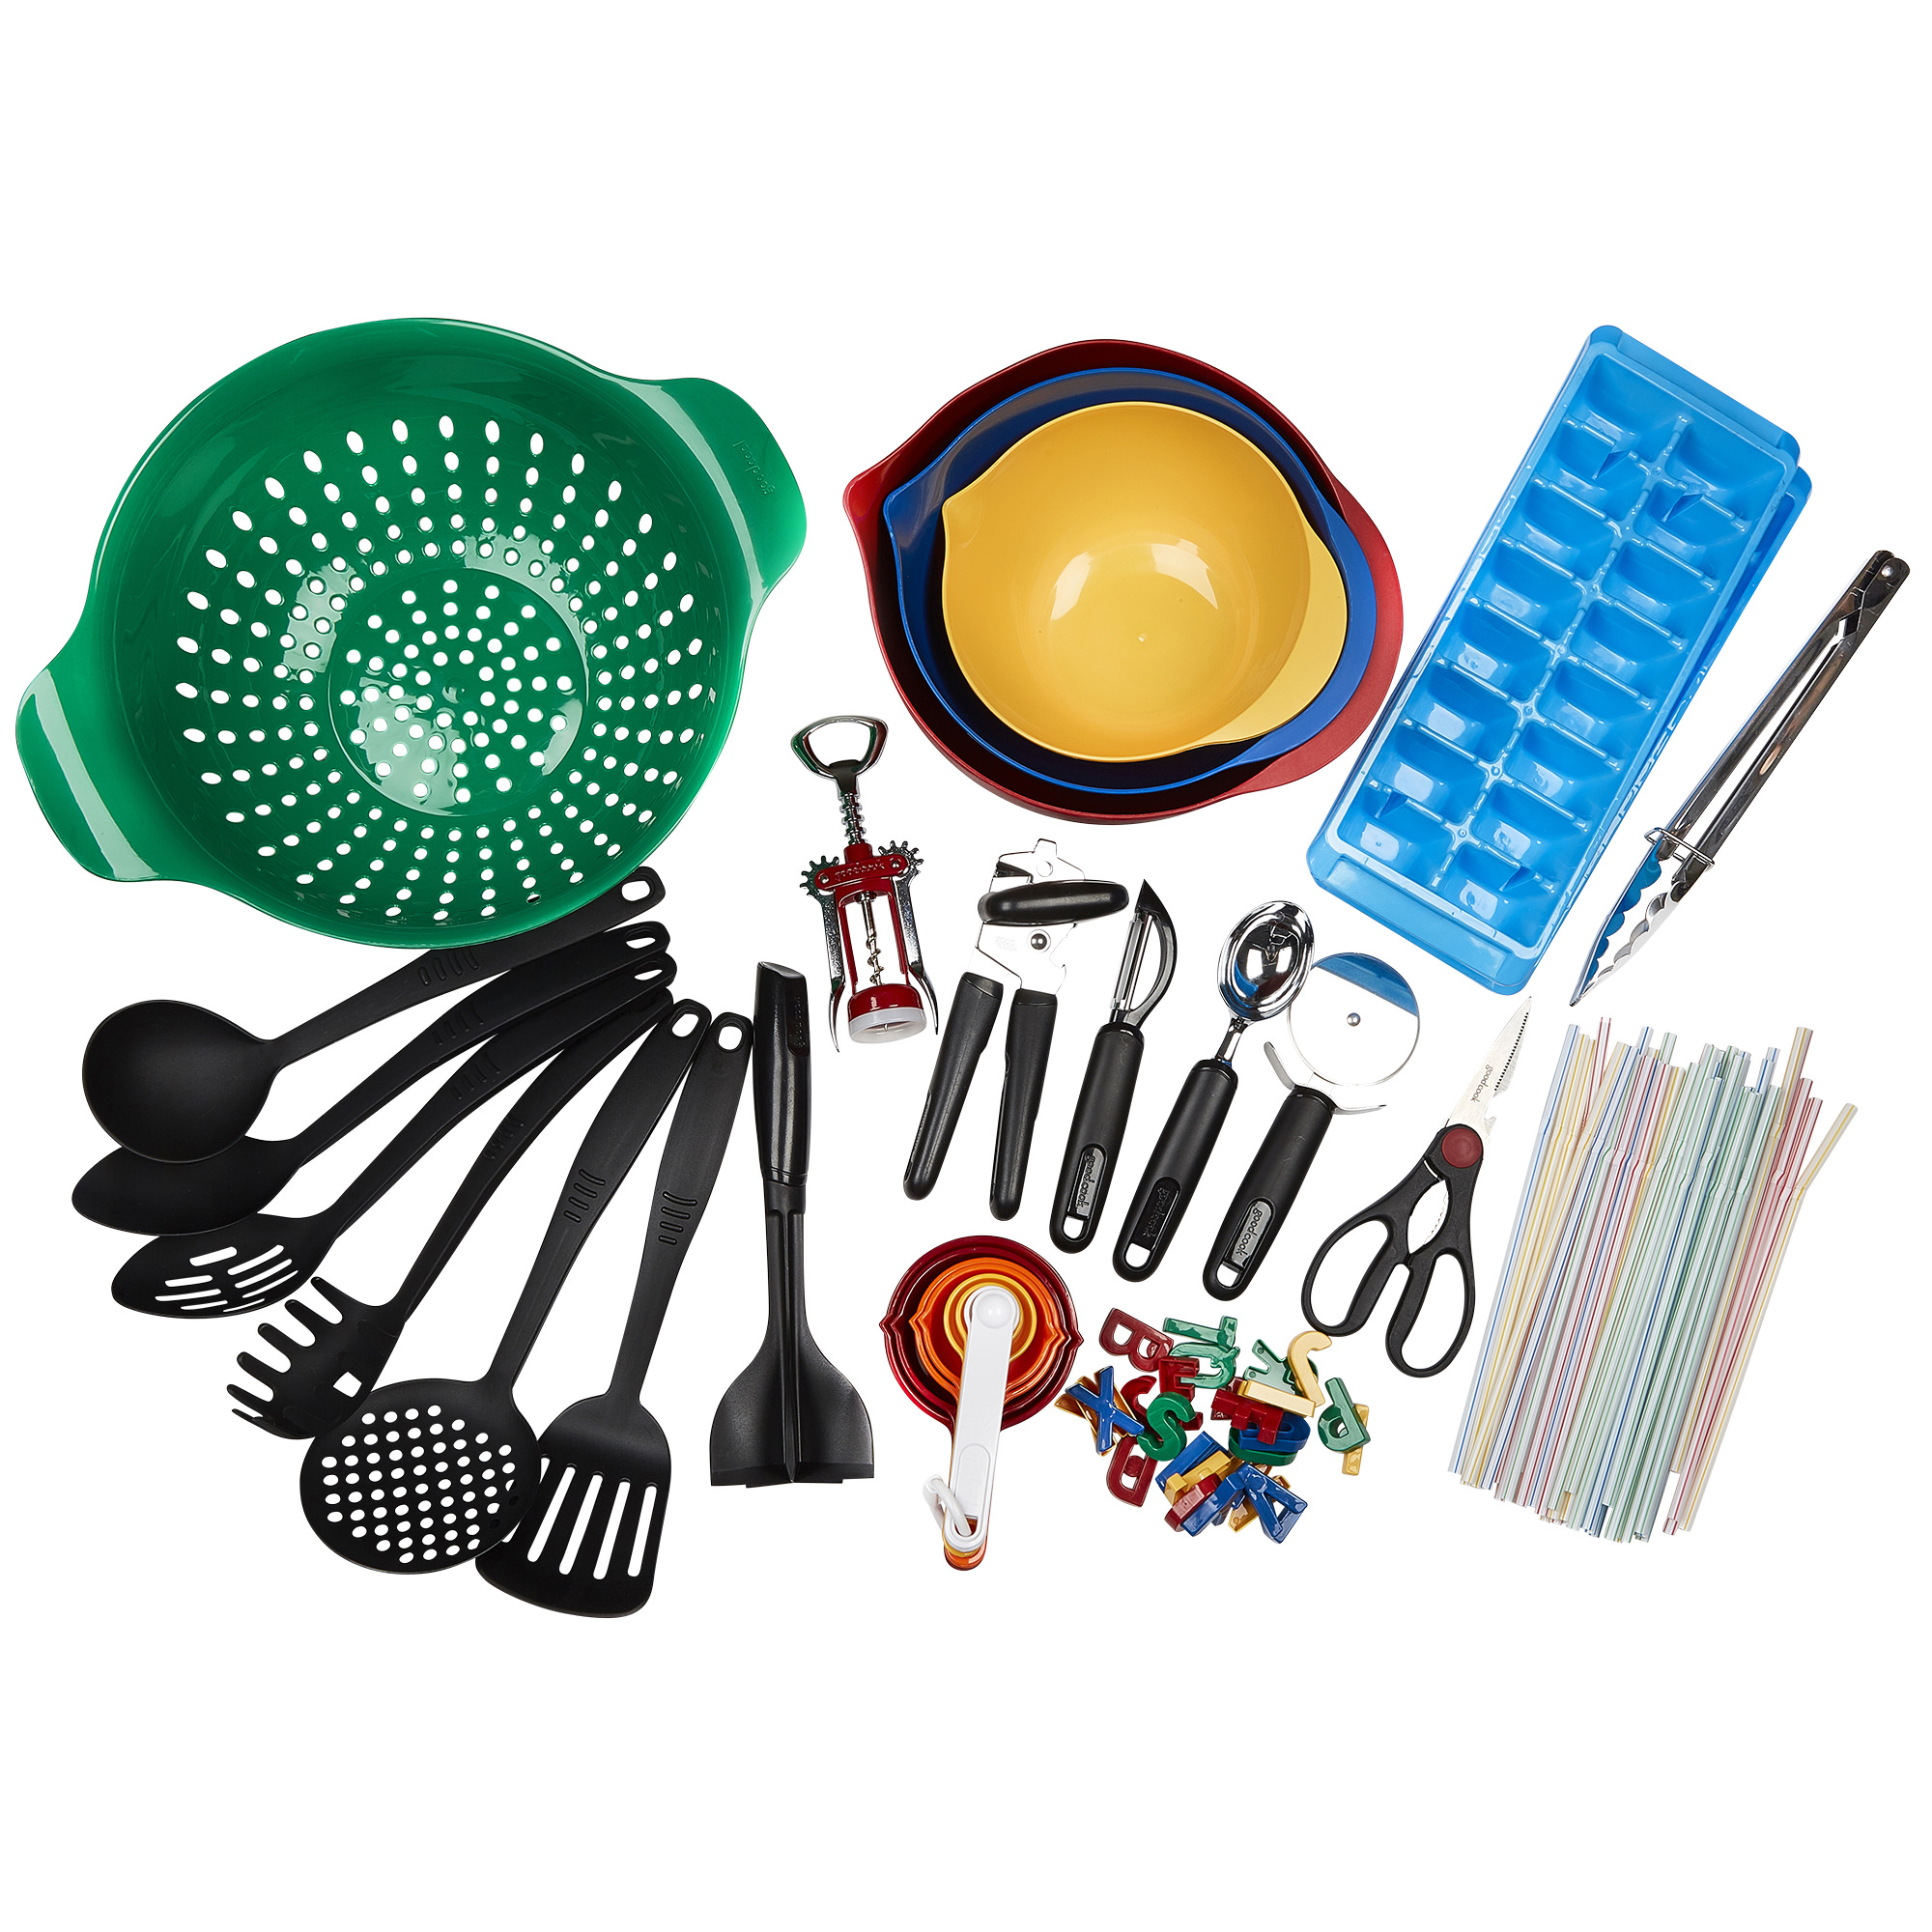 GoodCook Silver Tools and Gadget Set, 31-Piece